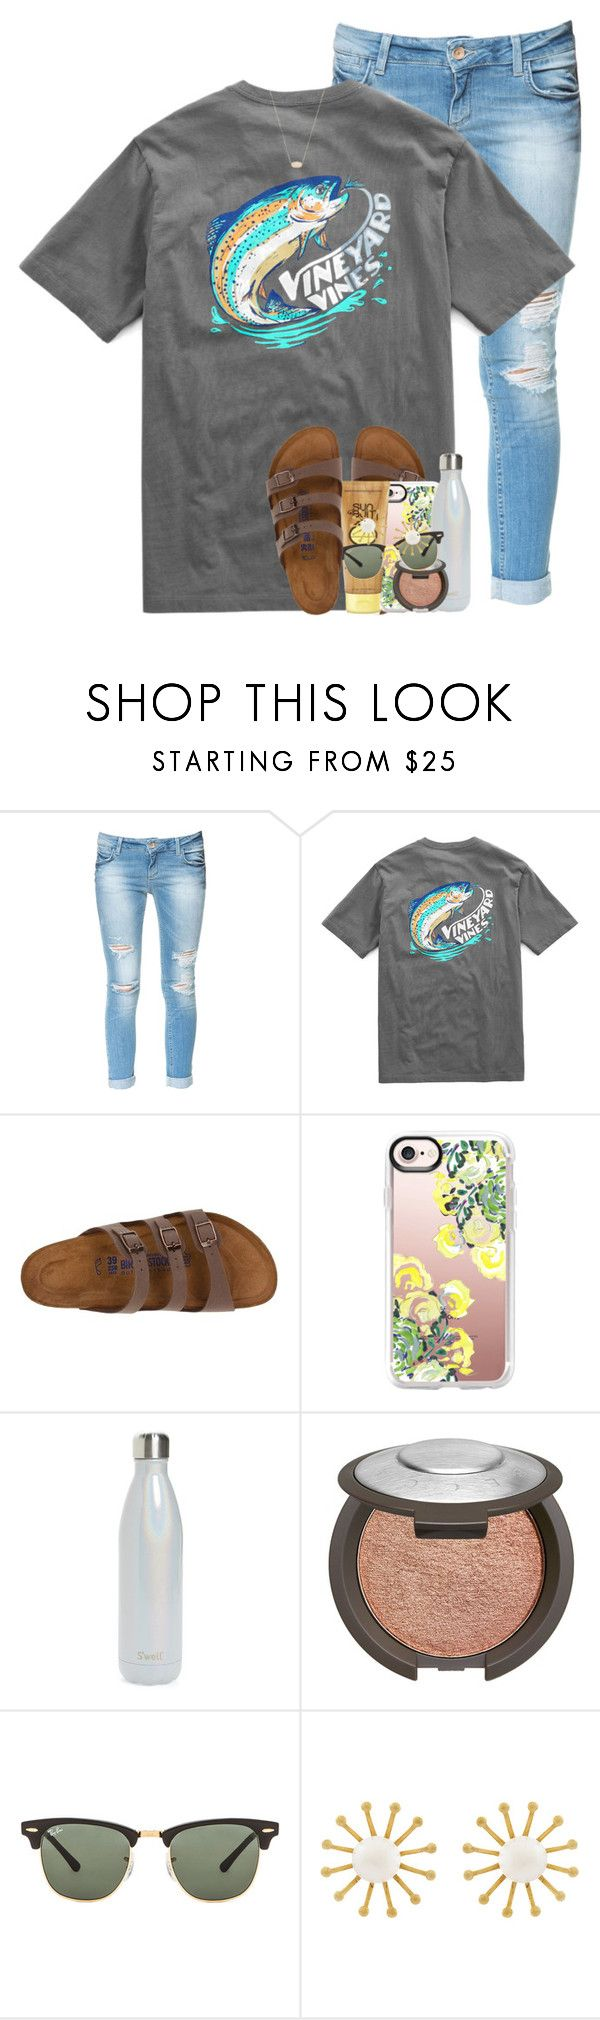 """""""big things are in store for this account!"""" by emilyandella ❤ liked on Polyvore featuring Zara, Birkenstock, Casetify, Sun Bum, S'well, Becca, Ray-Ban, Meg Carter Designs and Kendra Scott"""